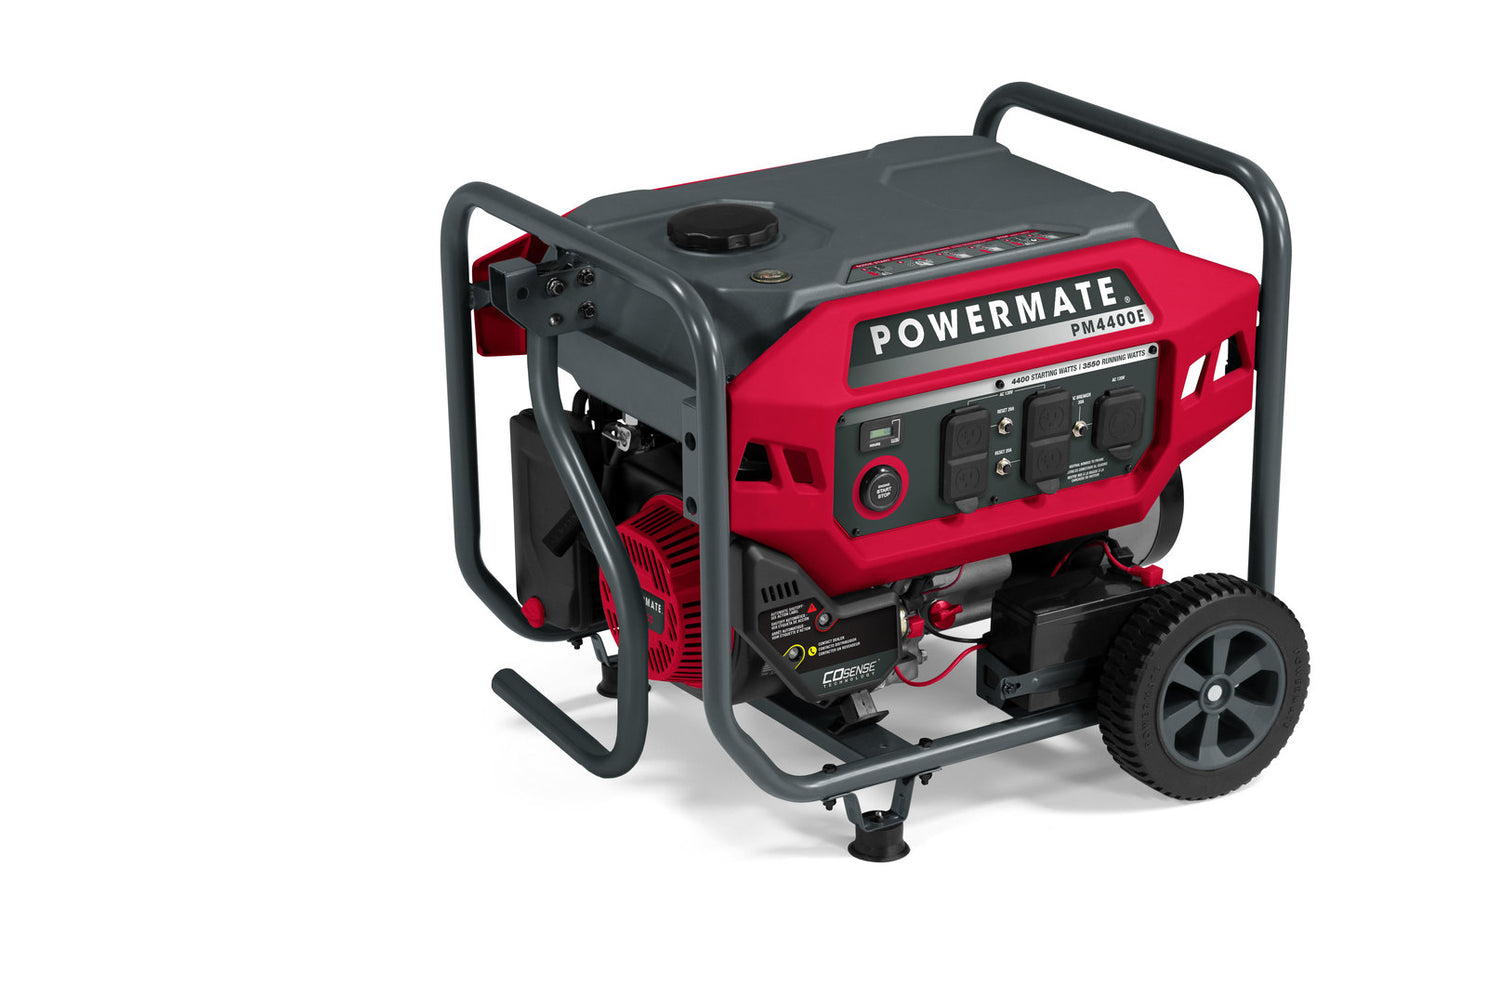 Powermate PM4400E - 4,400 Watt Electric Start Portable Generator, 49-ST. #P0079800